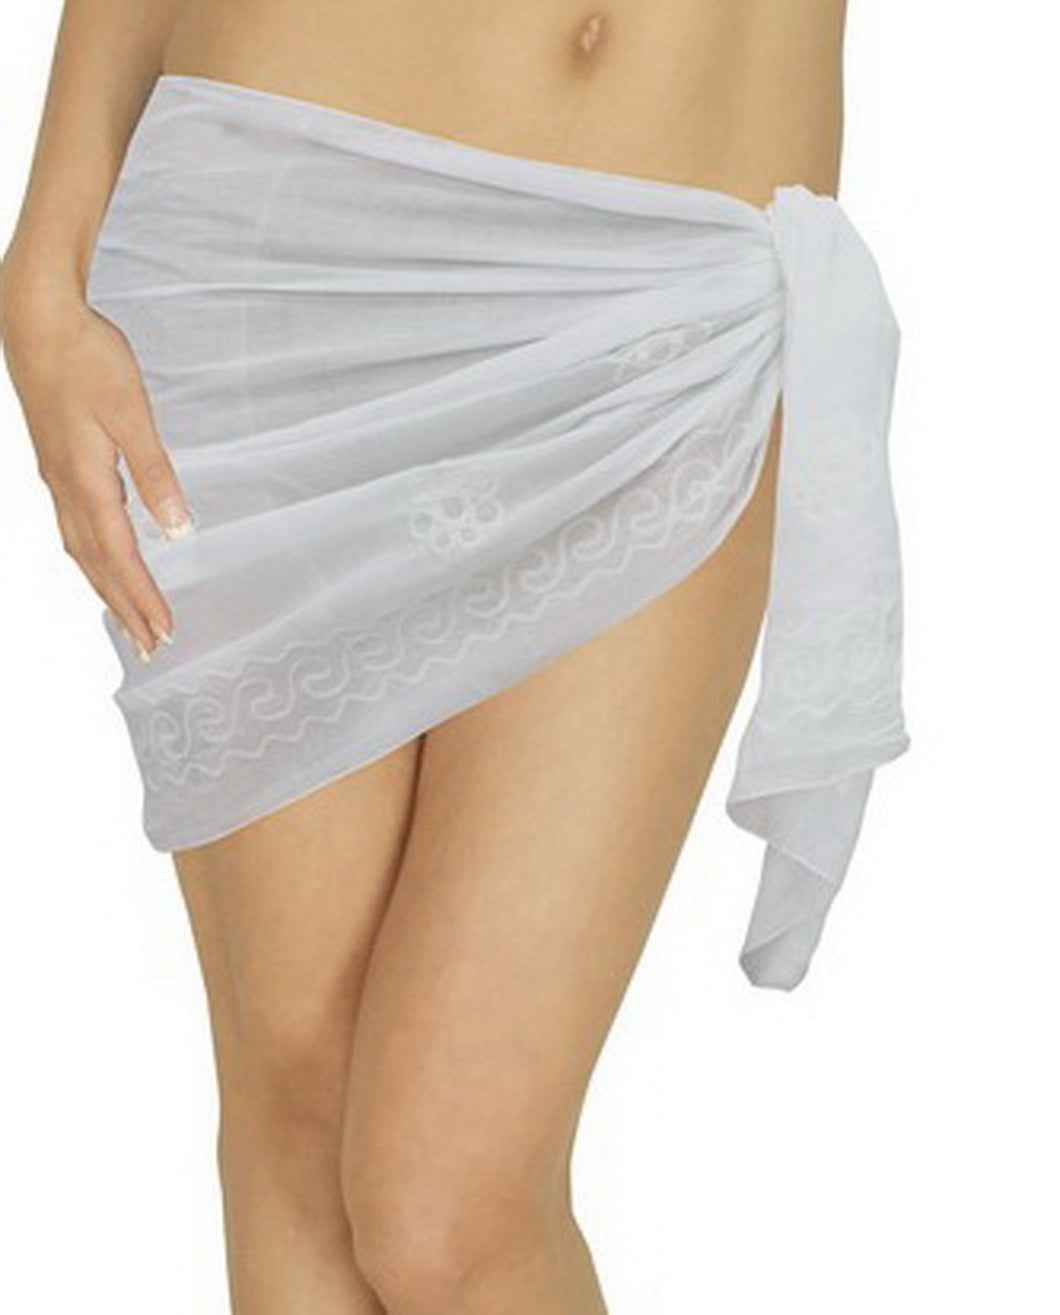 la-leela-cotton-swimsuit-pareo-towel-women-sarong-solid-72x19-white_6062-white_e352